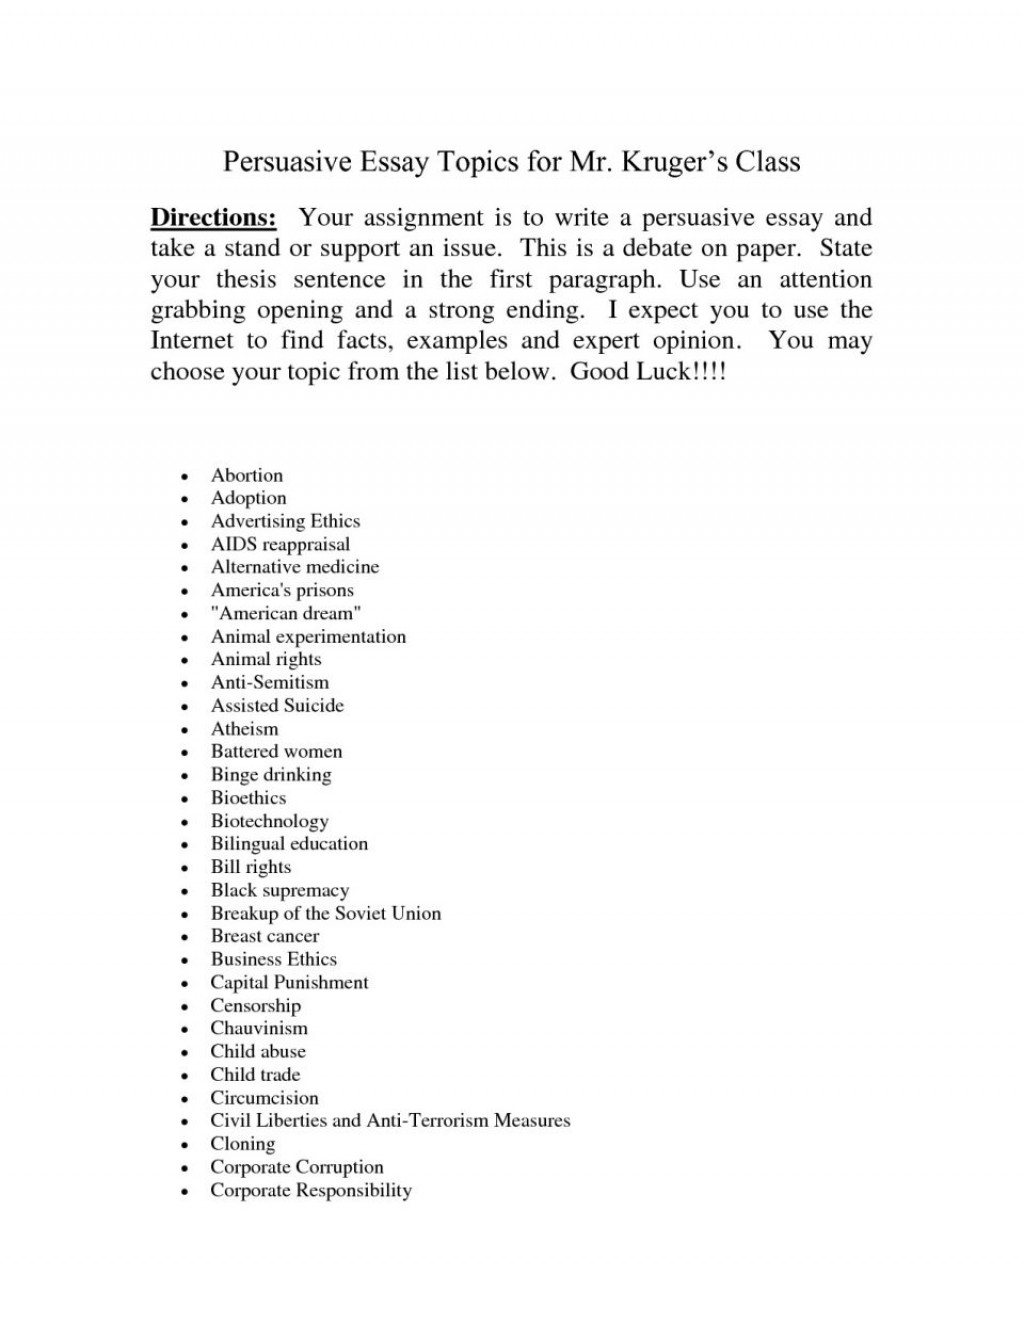 001 Topic For Essay Barca Fontanacountryinn Within Good Persuasive Narrative Topics To Write Abo Easy About Personal Descriptive Research Paper Informative Synthesis College Fantastic Computer Science World History High School Students Large